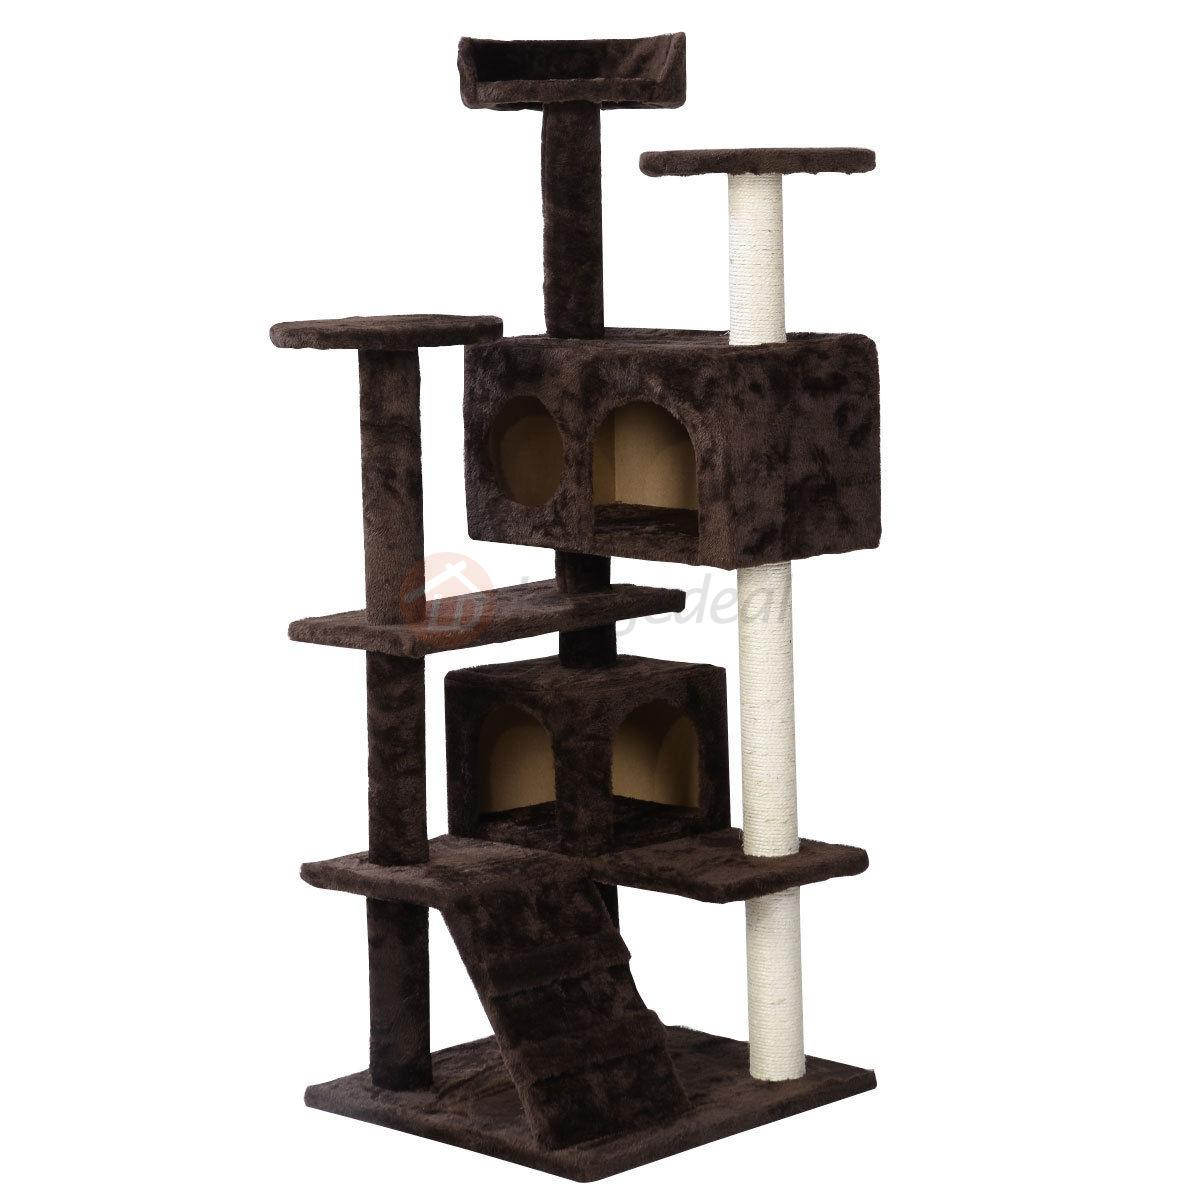 52 cat tree condo furniture play toy scratch post kitten. Black Bedroom Furniture Sets. Home Design Ideas